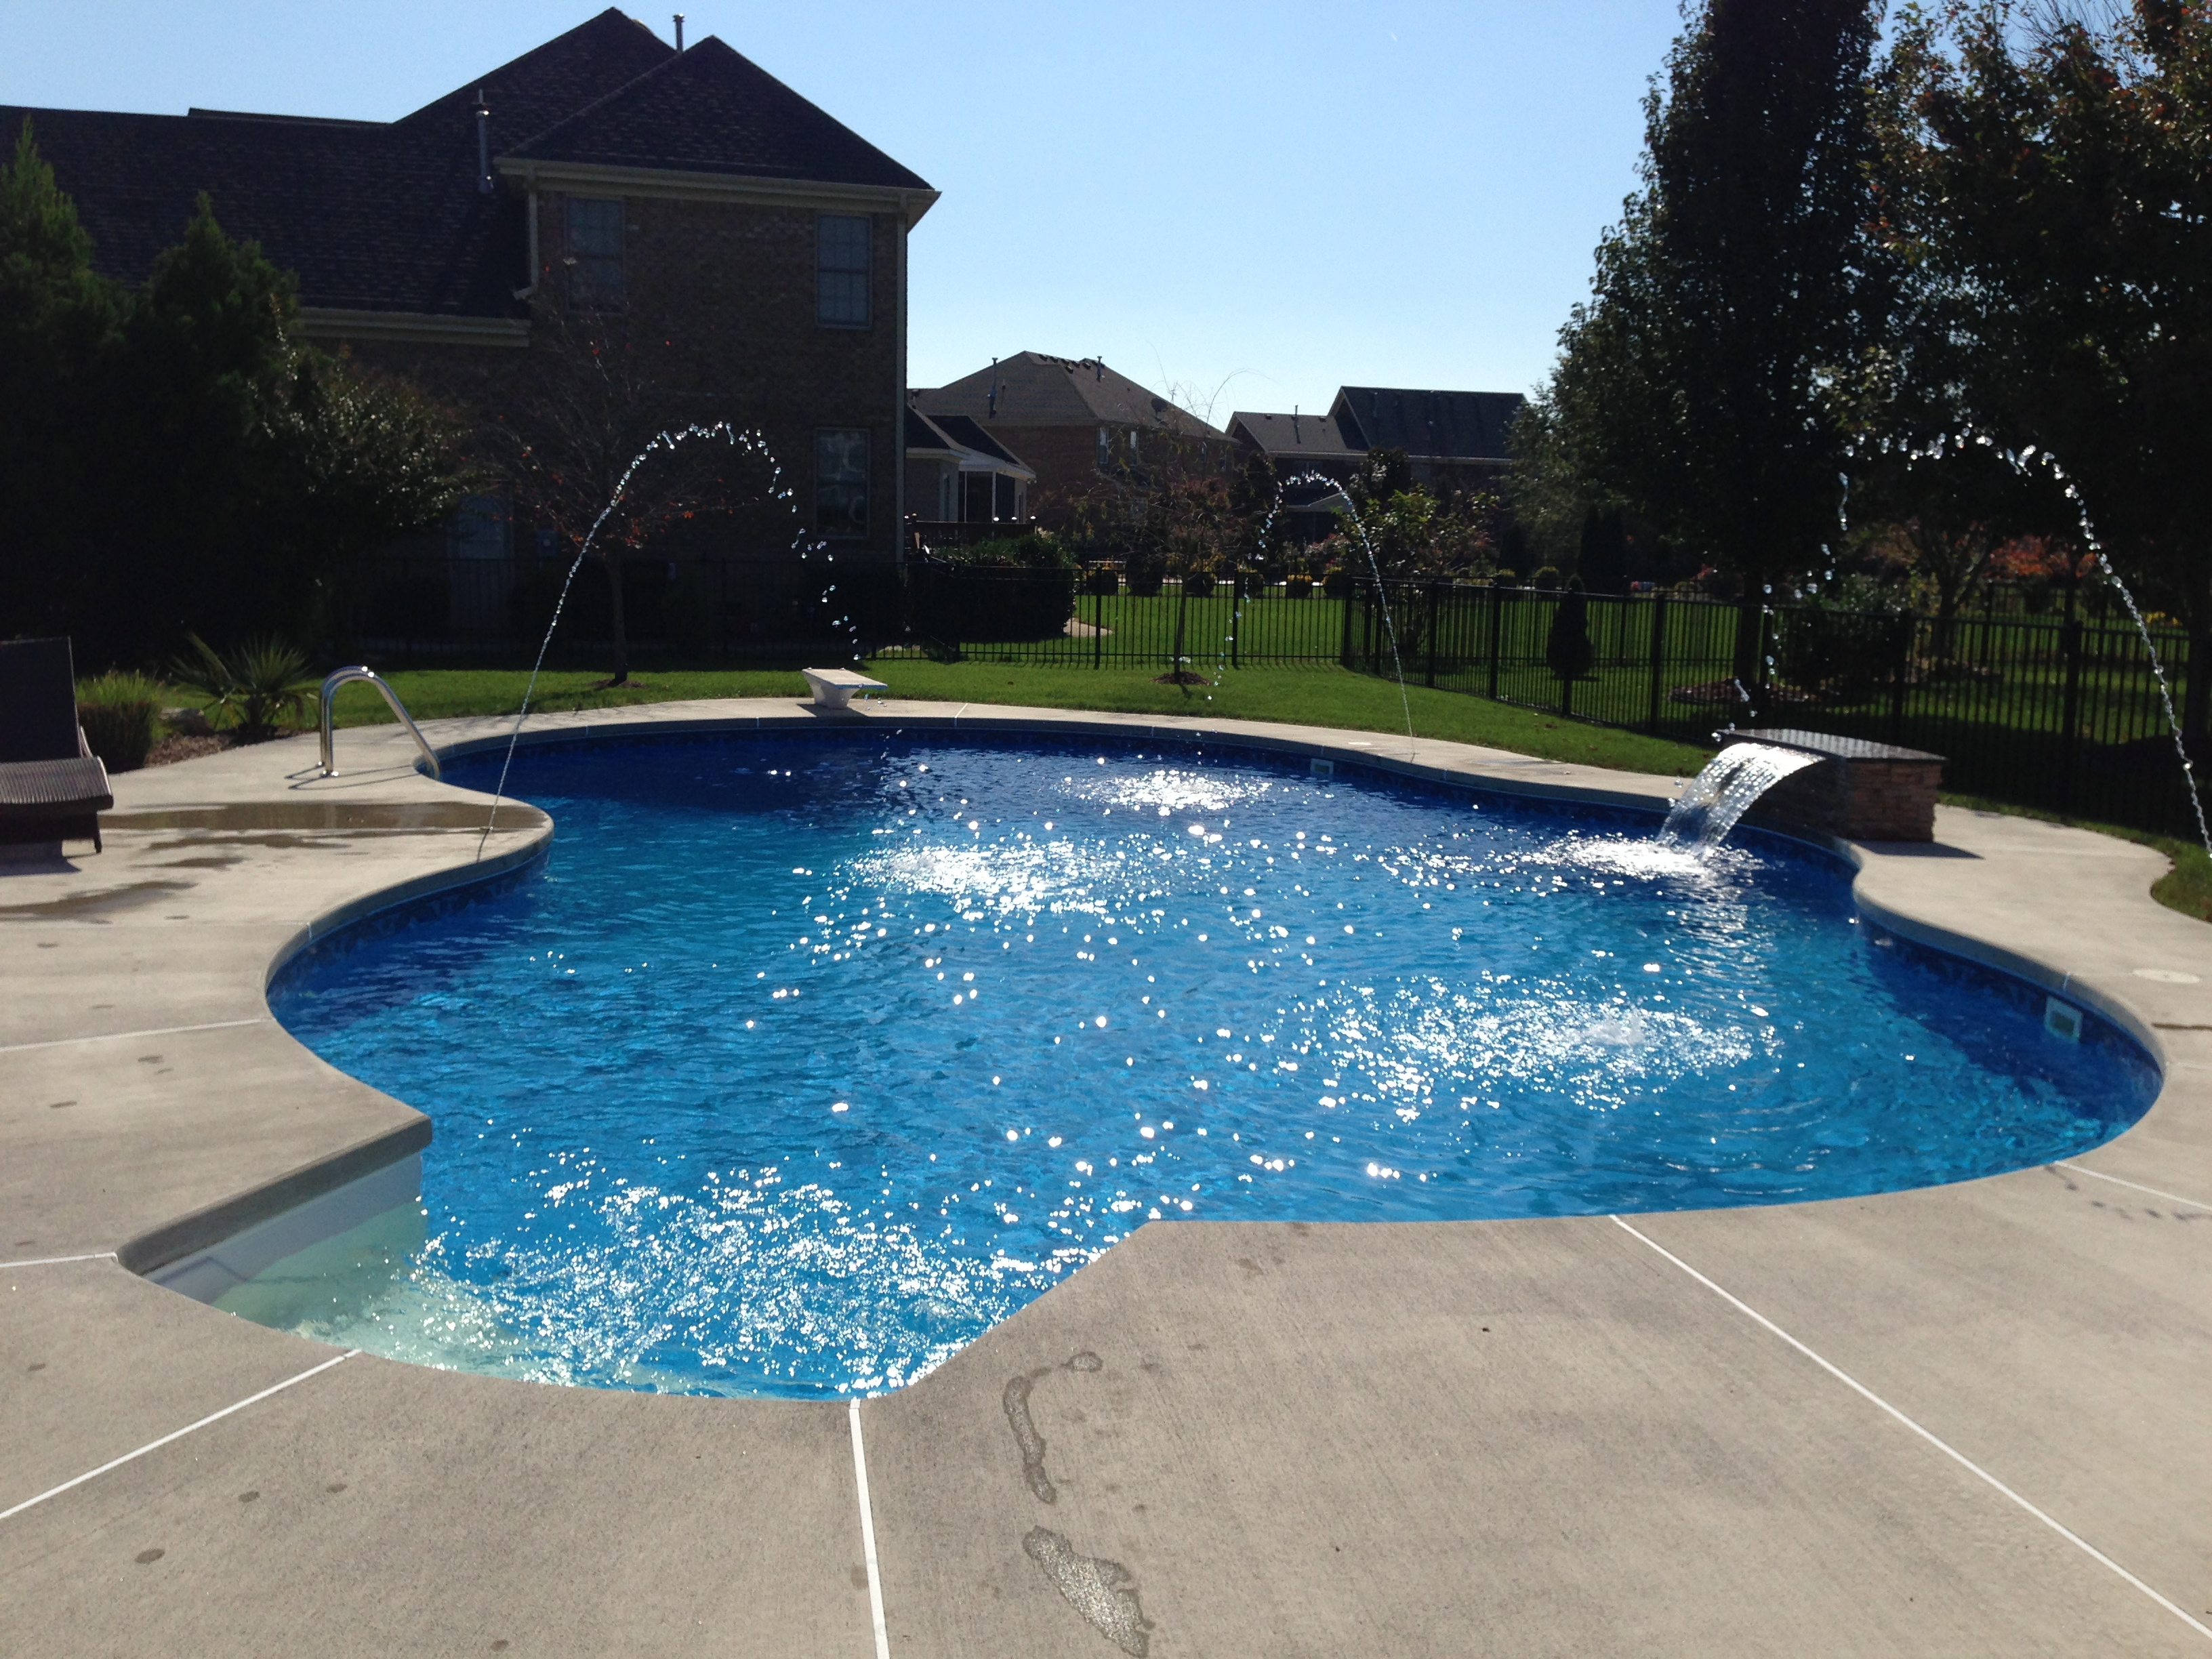 Chlorine to salt pool conversions island pool services for Convert swimming pool to saltwater